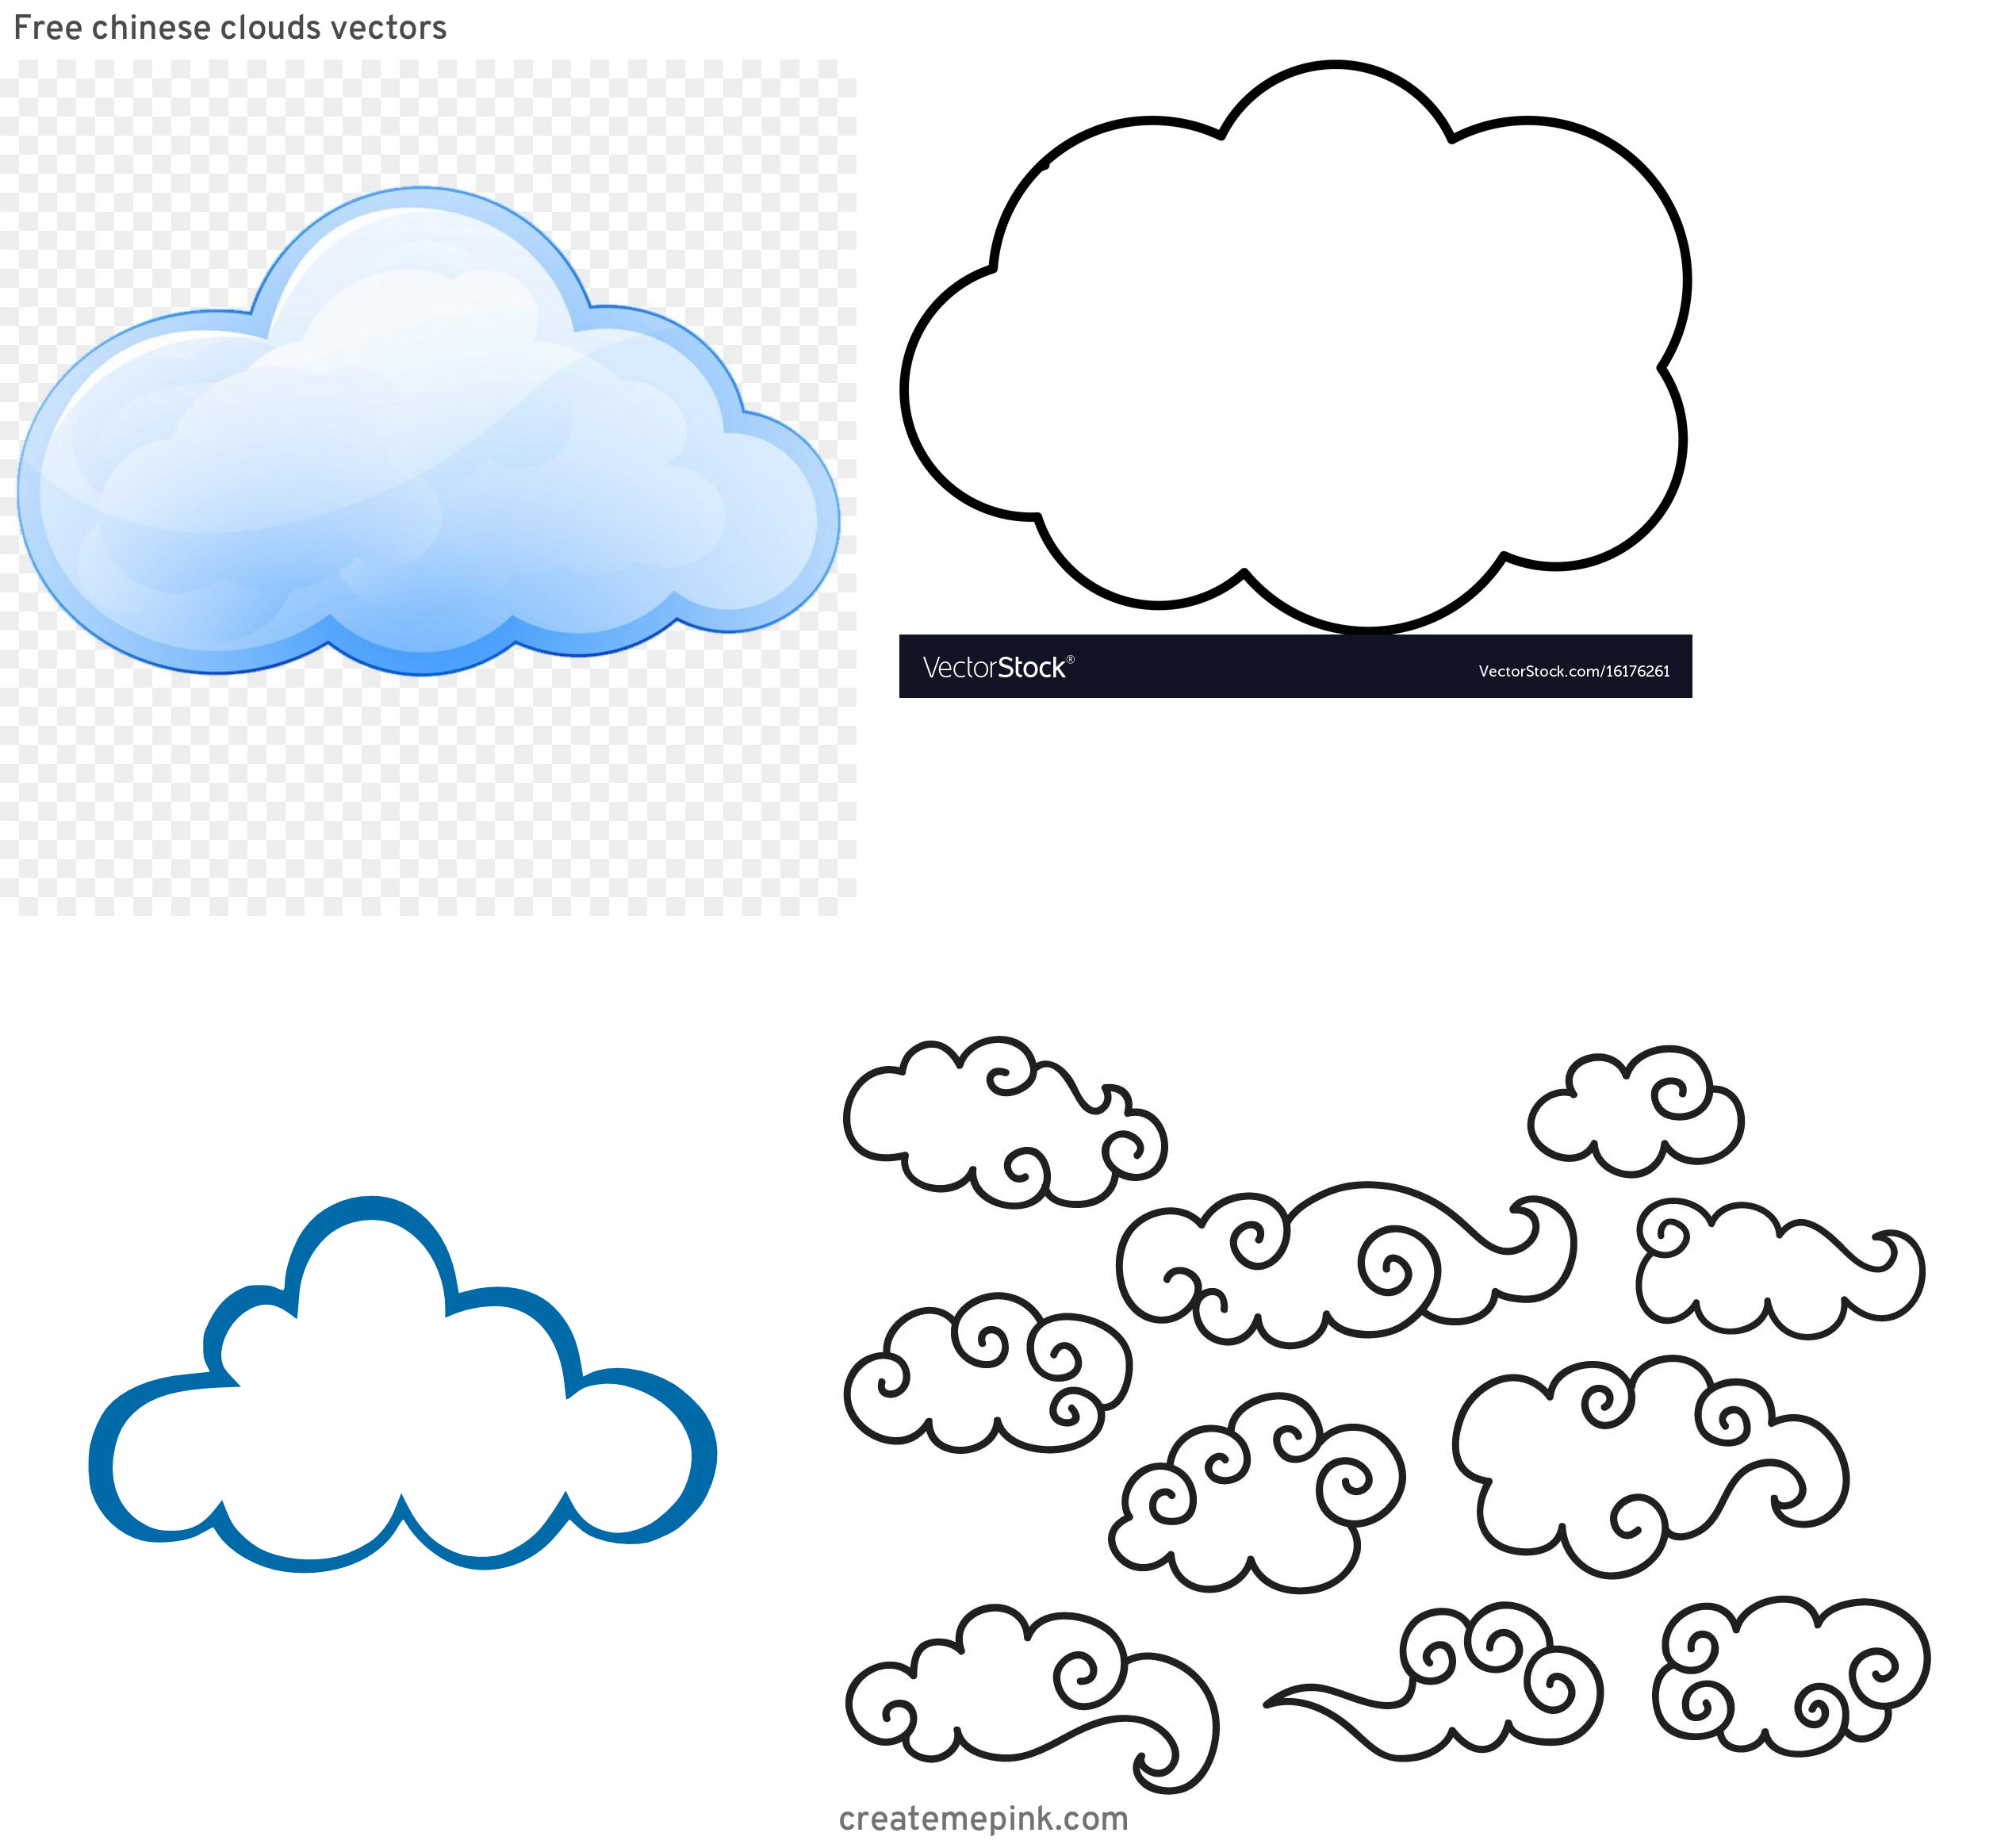 Cloud Clip Art Vector: Free Chinese Clouds Vectors